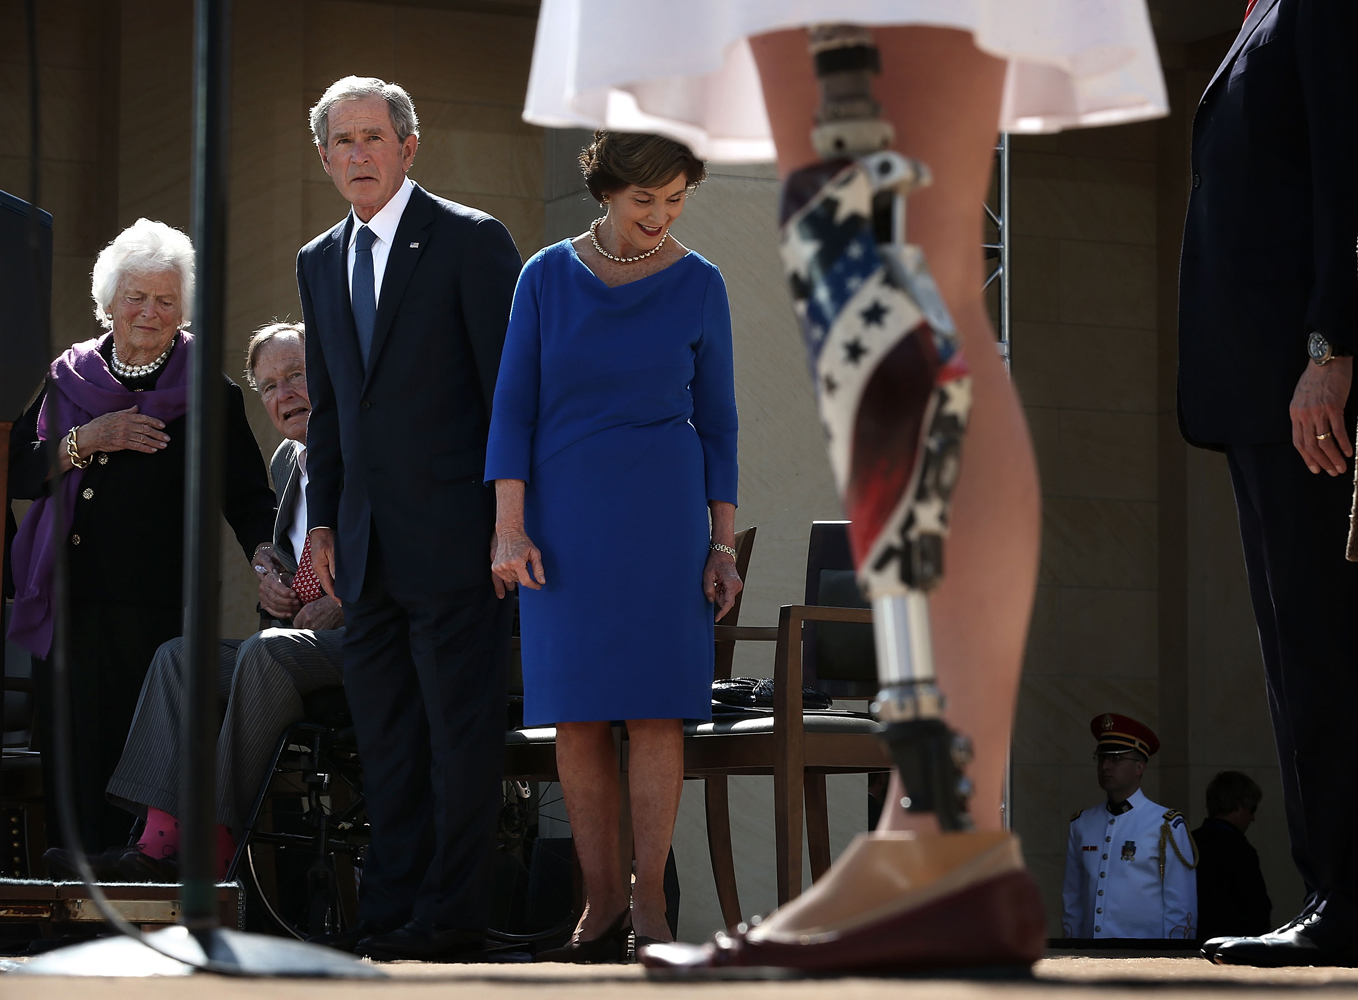 April 25, 2013. Army 1st Lt. Melissa Stockwell (Ret.) (R), who was the first female American soldier to lose a limb in the war in Iraq, recites the Pledge of Allegiance as (L-R) former U.S. first lady Barbara Bush, former President George H.W. Bush, former President George W. Bush and former first lady Laura Bush look on during the opening ceremony of the George W. Bush Presidential Center in Dallas, Texas.